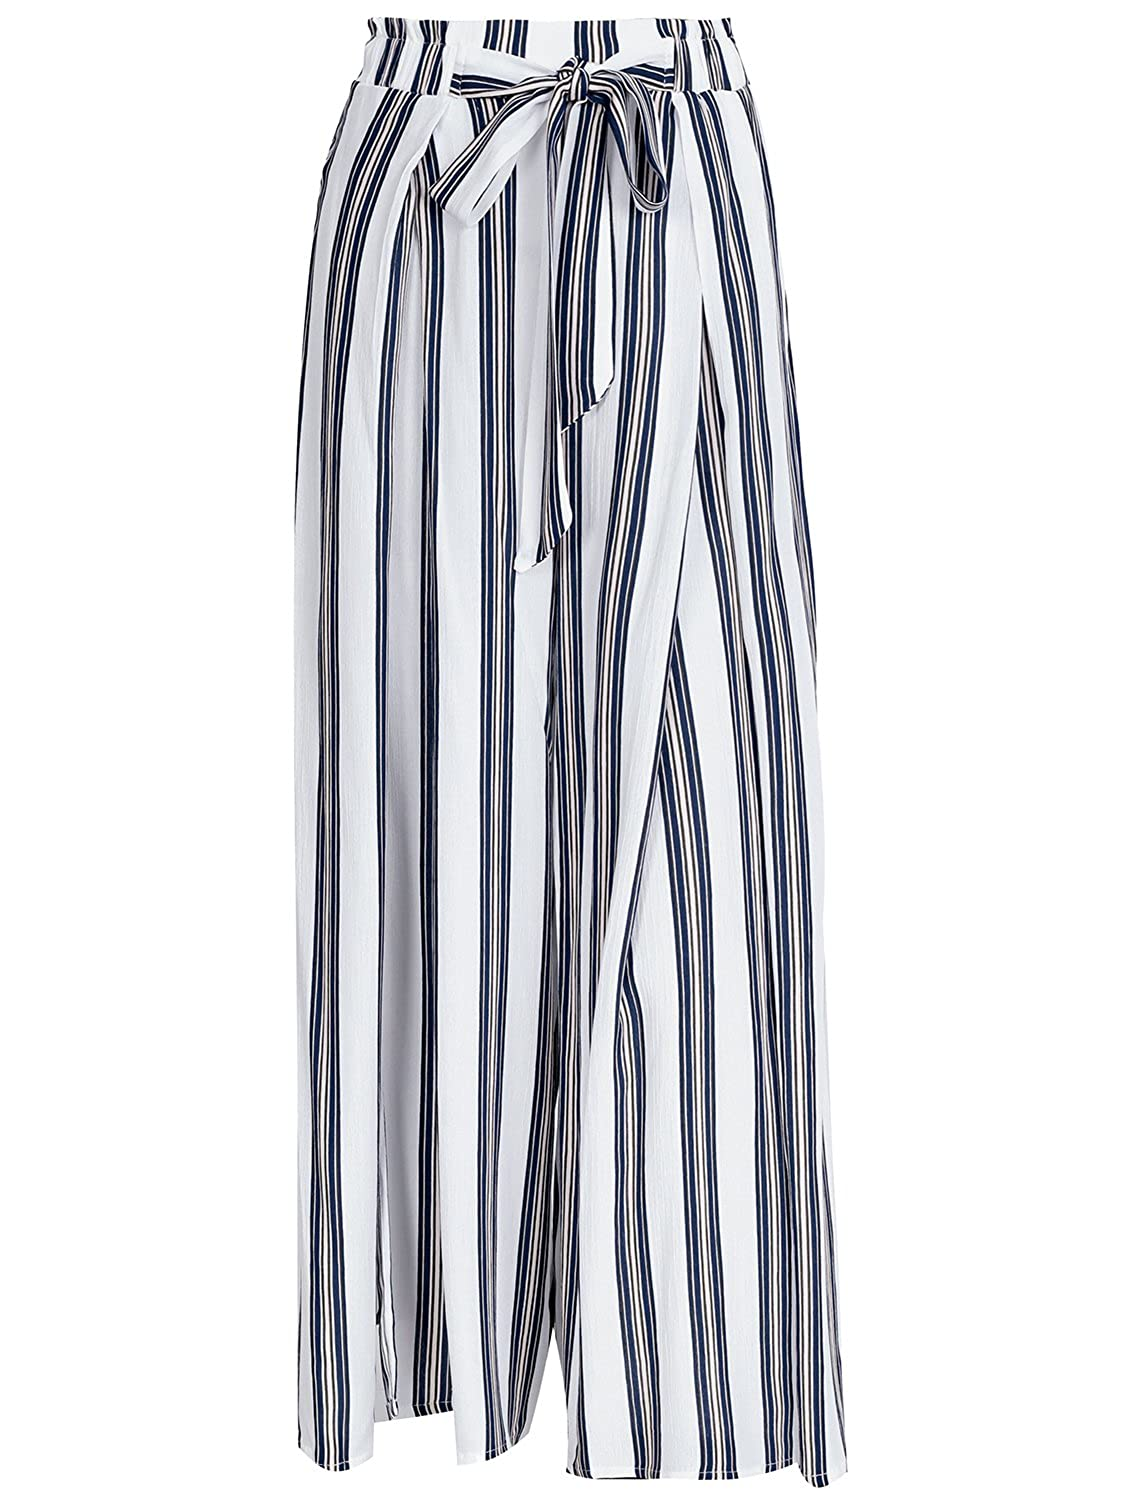 Vintage High Waisted Trousers, Sailor Pants, Jeans Simplee Womens Elegant Striped Split High Waisted Belted Flowy Wide Leg Pants $22.99 AT vintagedancer.com